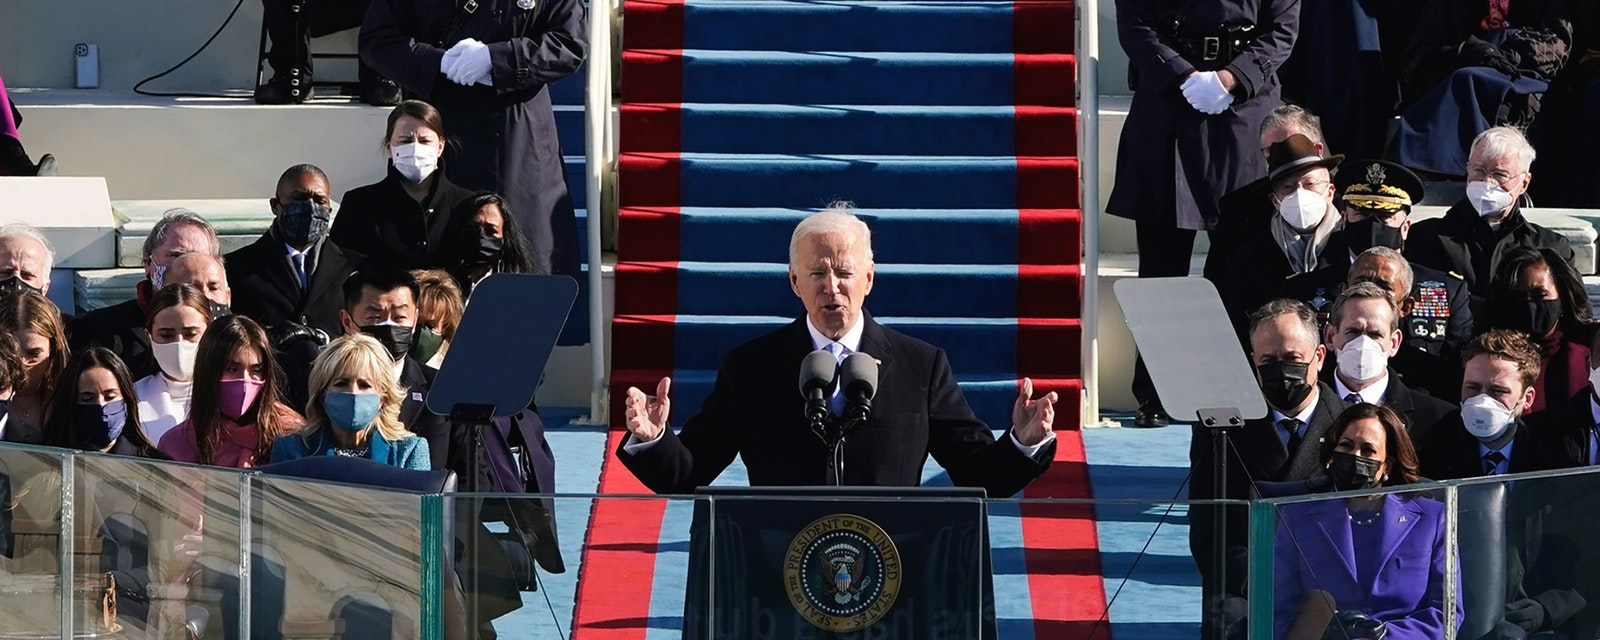 U.s.,President,Joe,Biden,Speaks,At,The,White,House,,Wednesday,